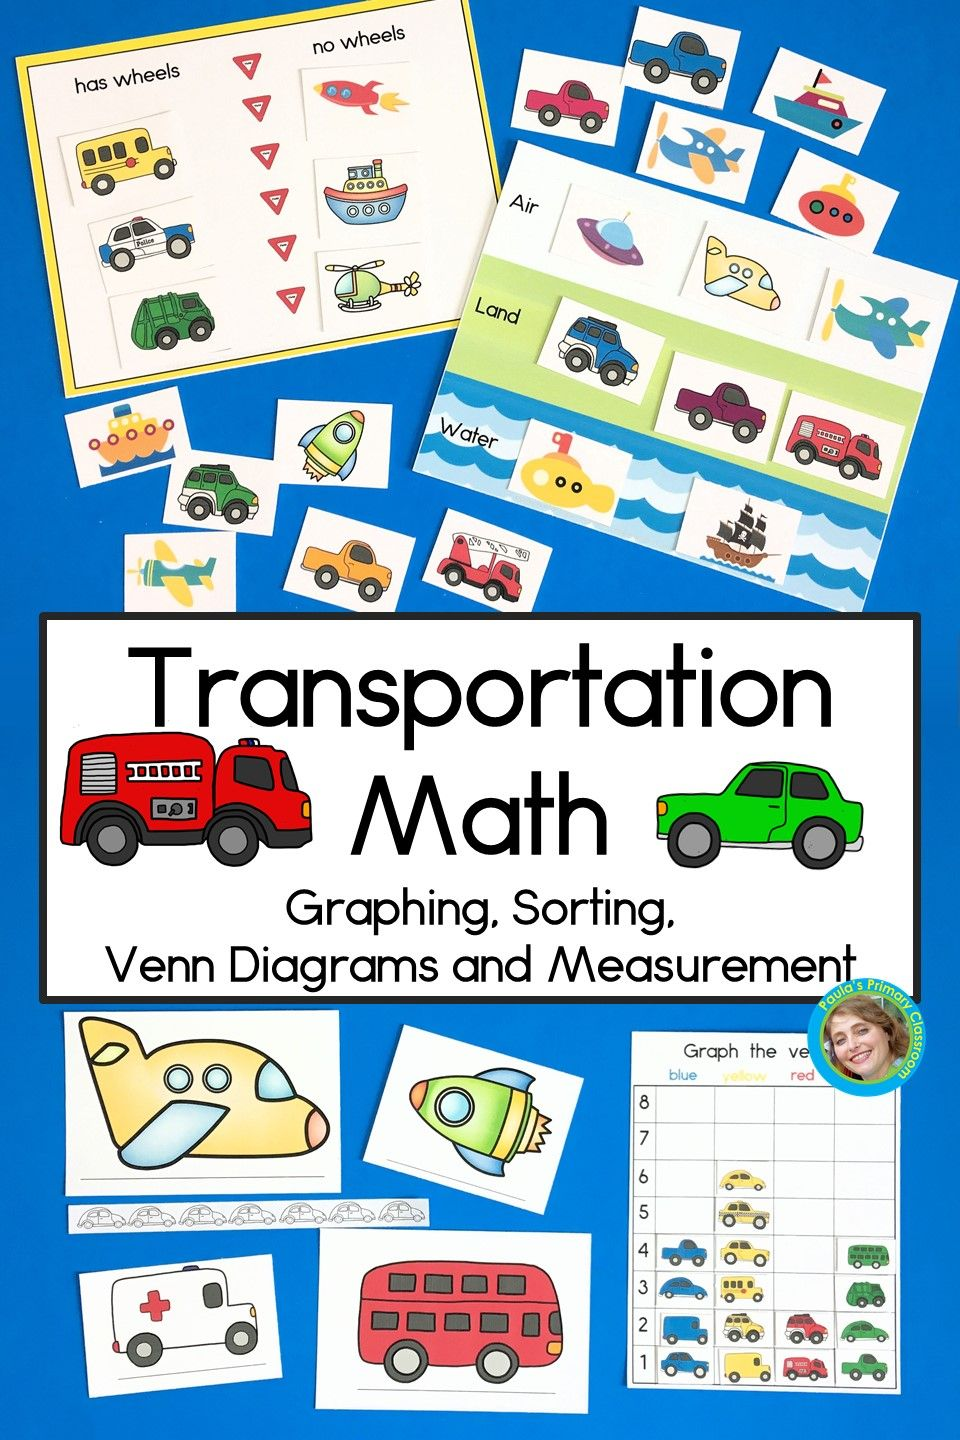 Transportation Math With Graphing Sorting Venn Diagrams And Measurement 1st Grade Math Worksheets 1st Grade Math Math Worksheets [ 1440 x 960 Pixel ]